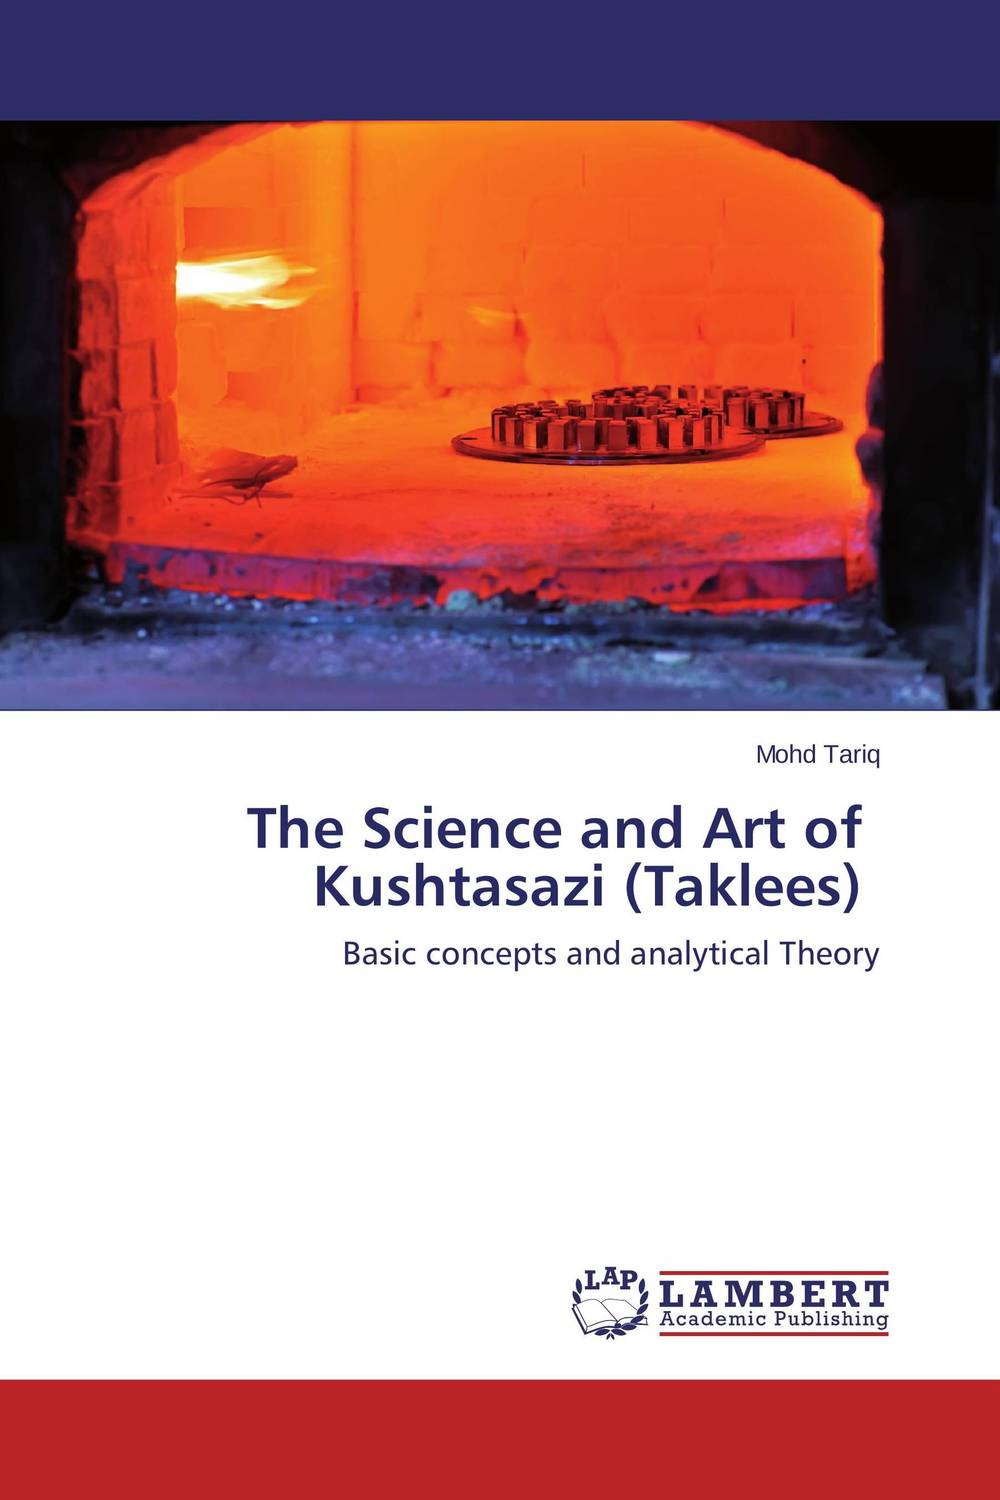 The Science and Art of   Kushtasazi (Taklees) avinash kaushik web analytics 2 0 the art of online accountability and science of customer centricity